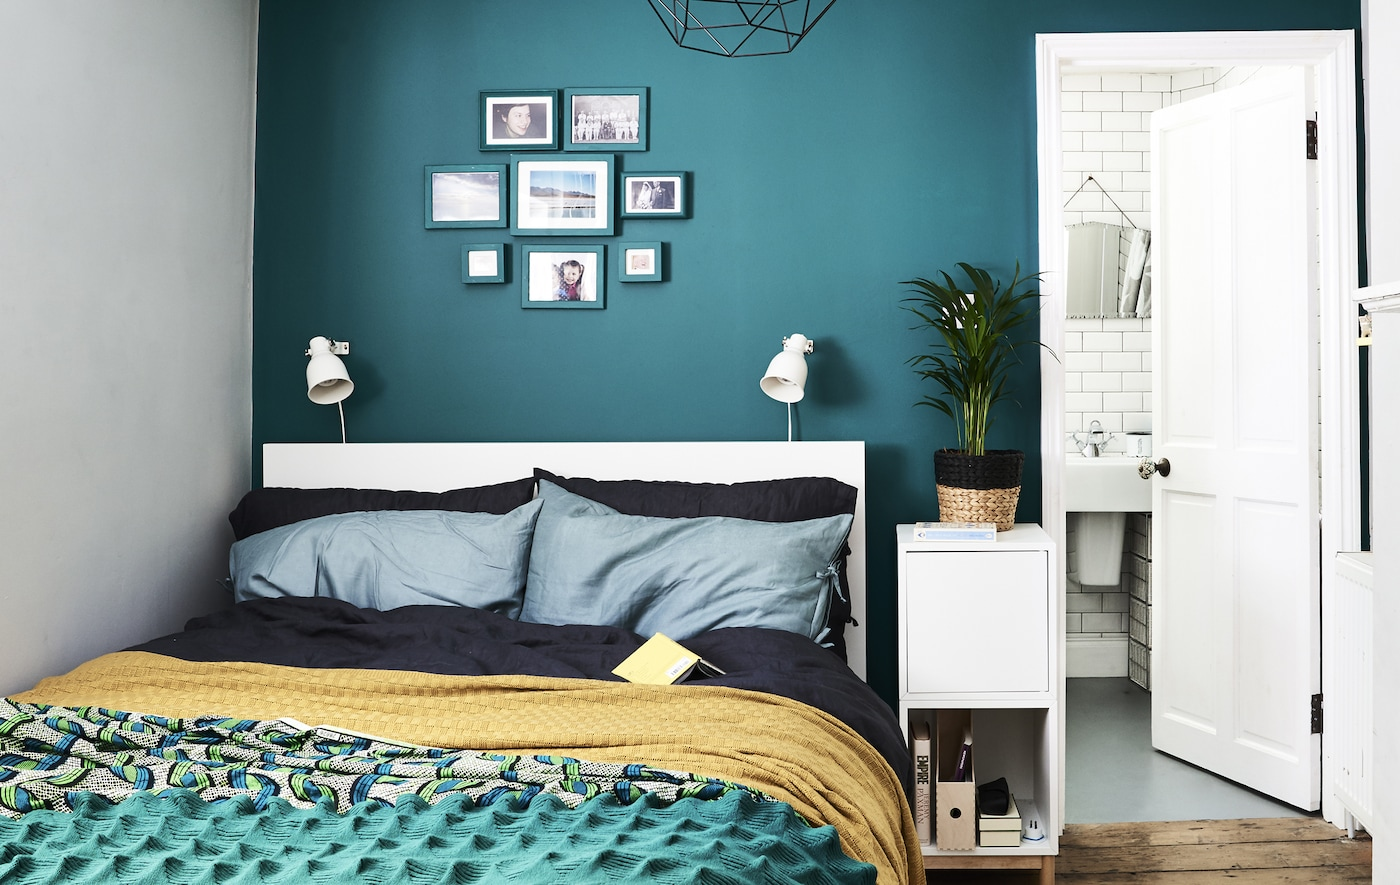 A bedroom with dark green wall and colourful bedding.